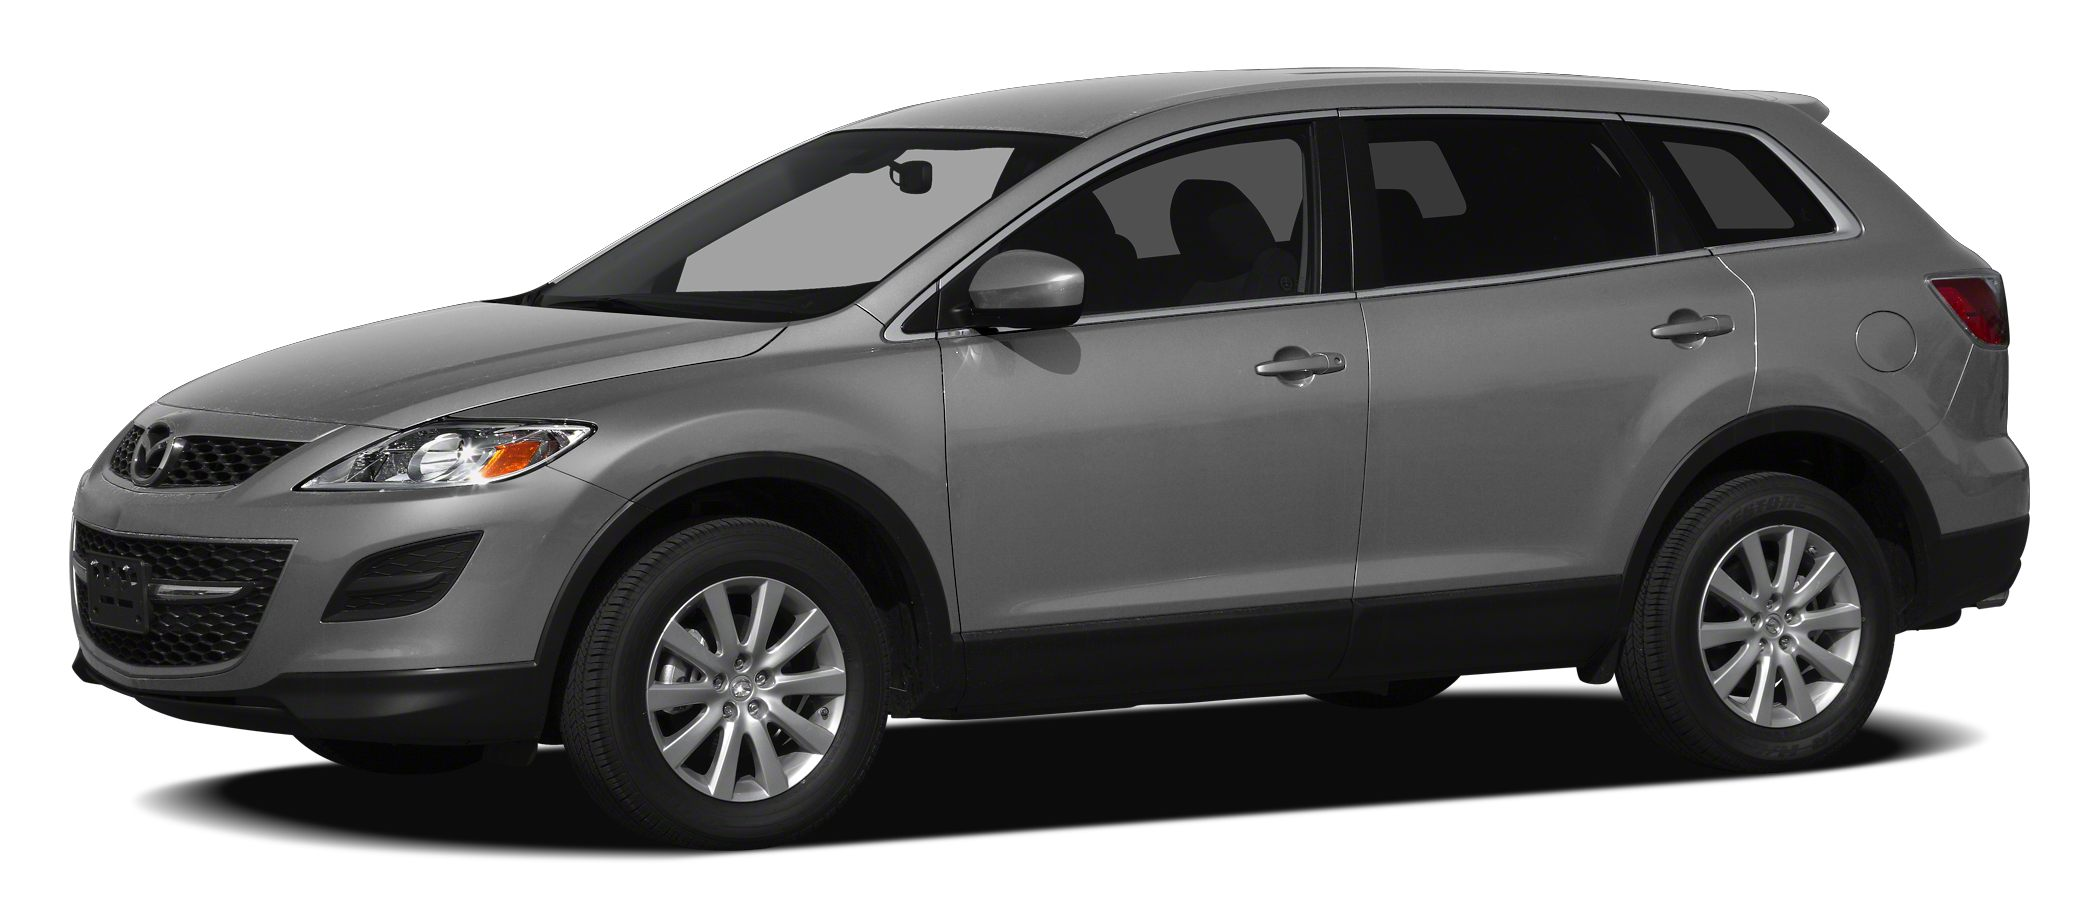 2012 Mazda CX-9 Grand Touring Snag a deal on this 2012 Mazda CX-9 Grand Touring before someone els